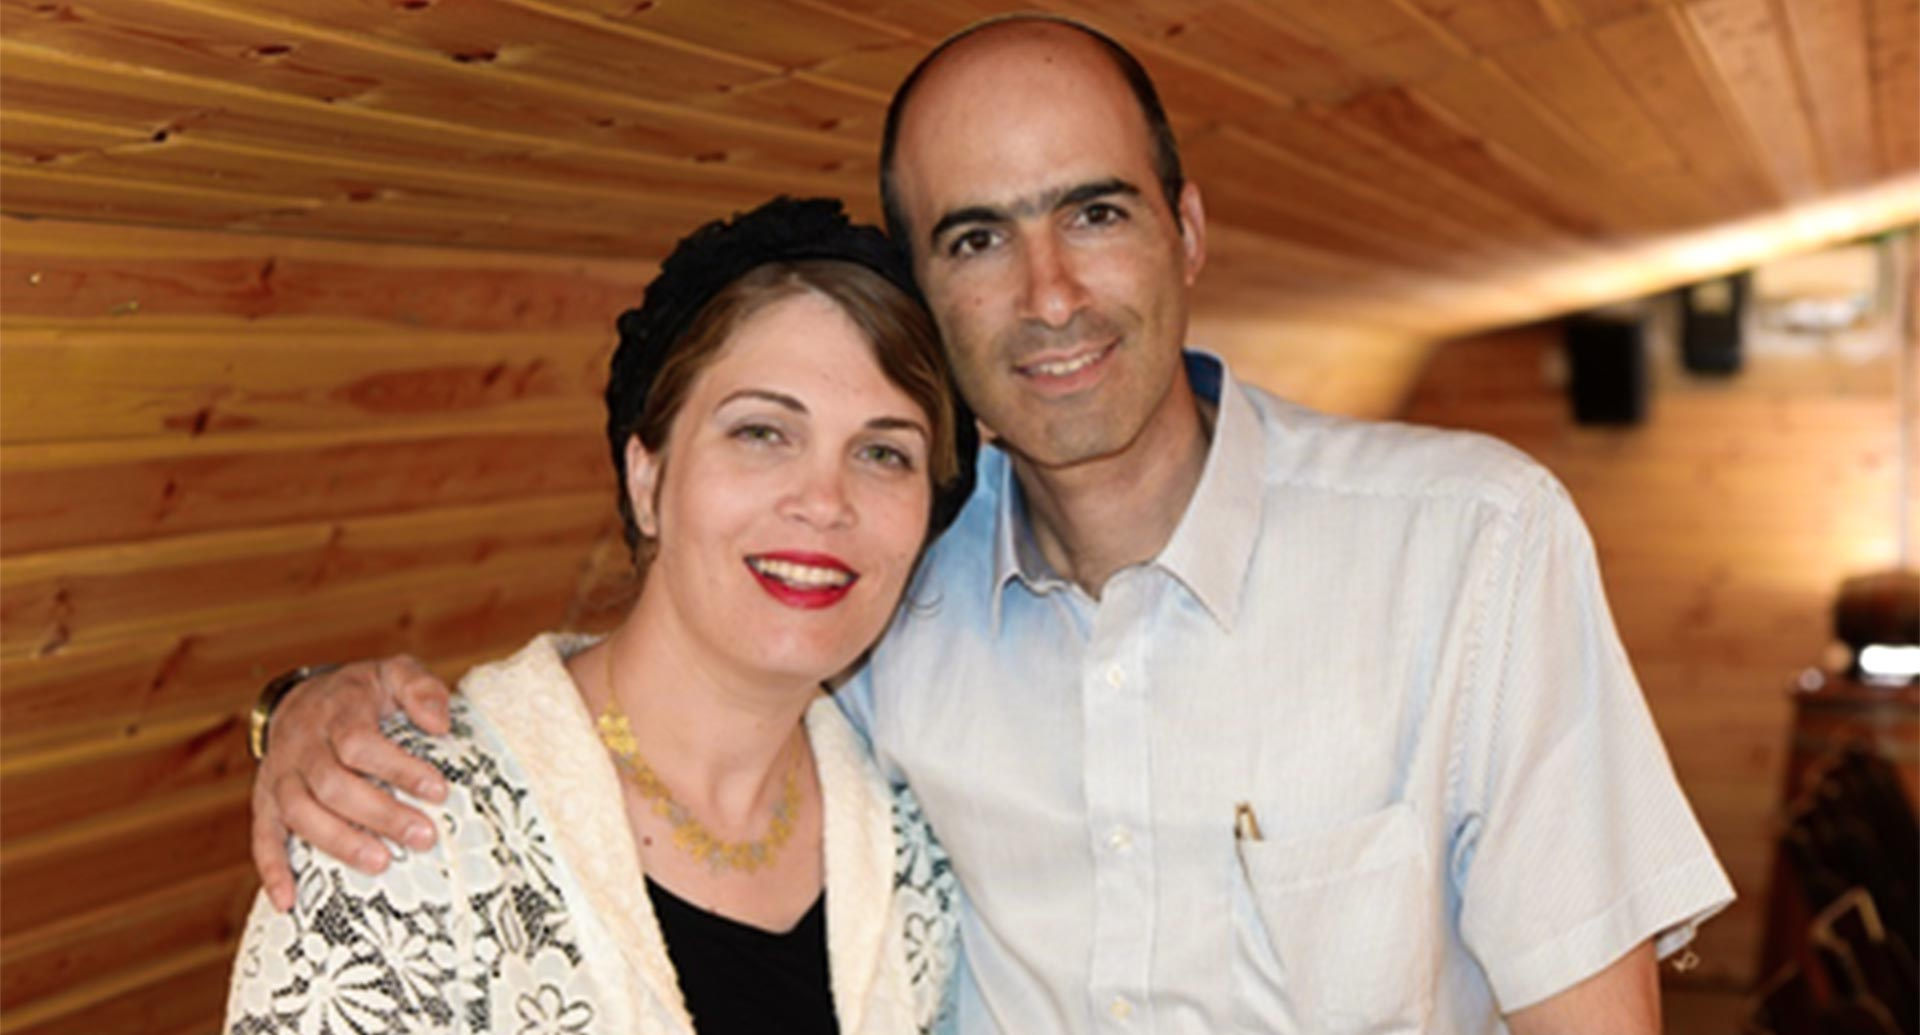 Erez and Vered